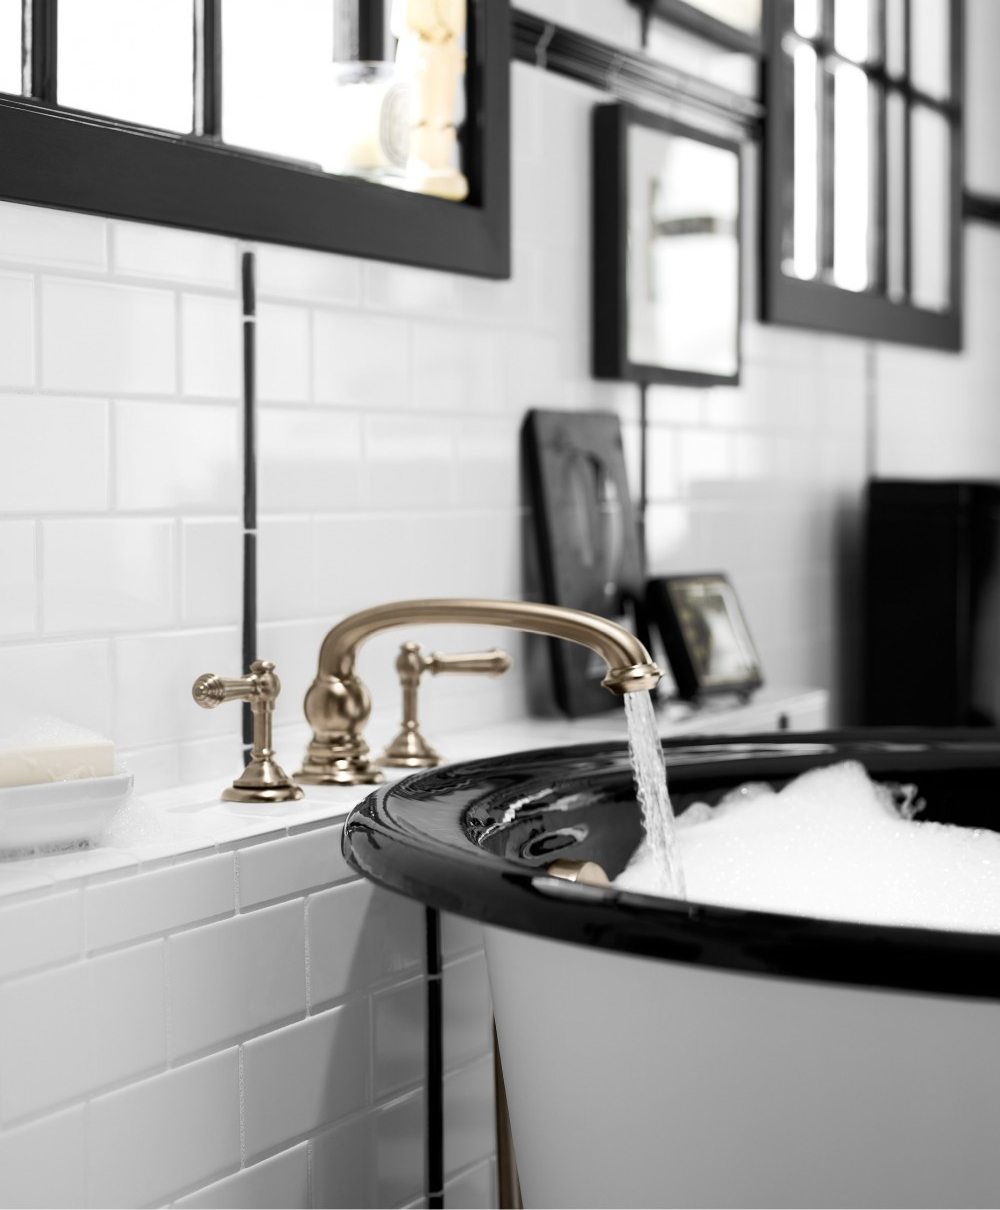 Artifacts Bath Faucet 72778,Iron Works Historic Tub 710